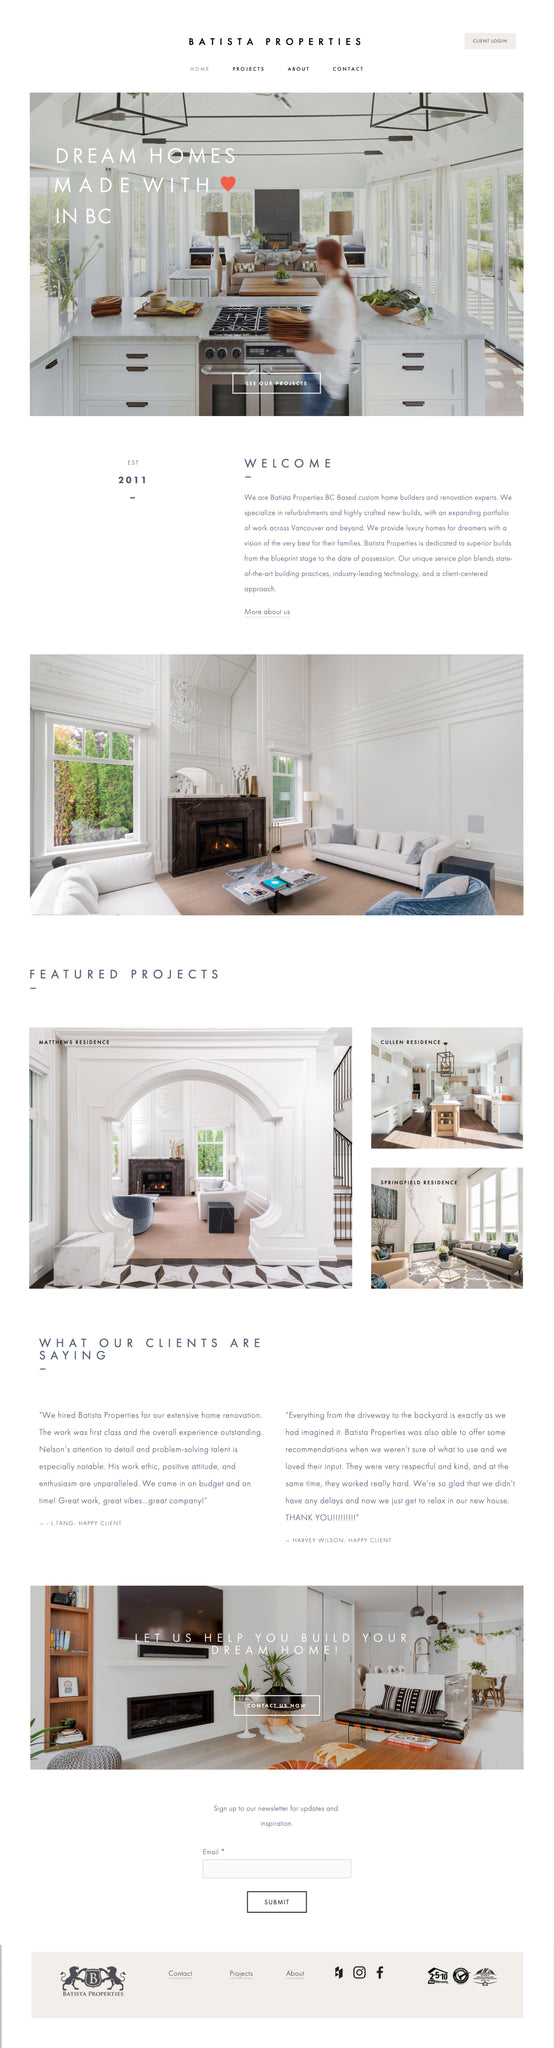 batistaProperties_squarespace_website_designer